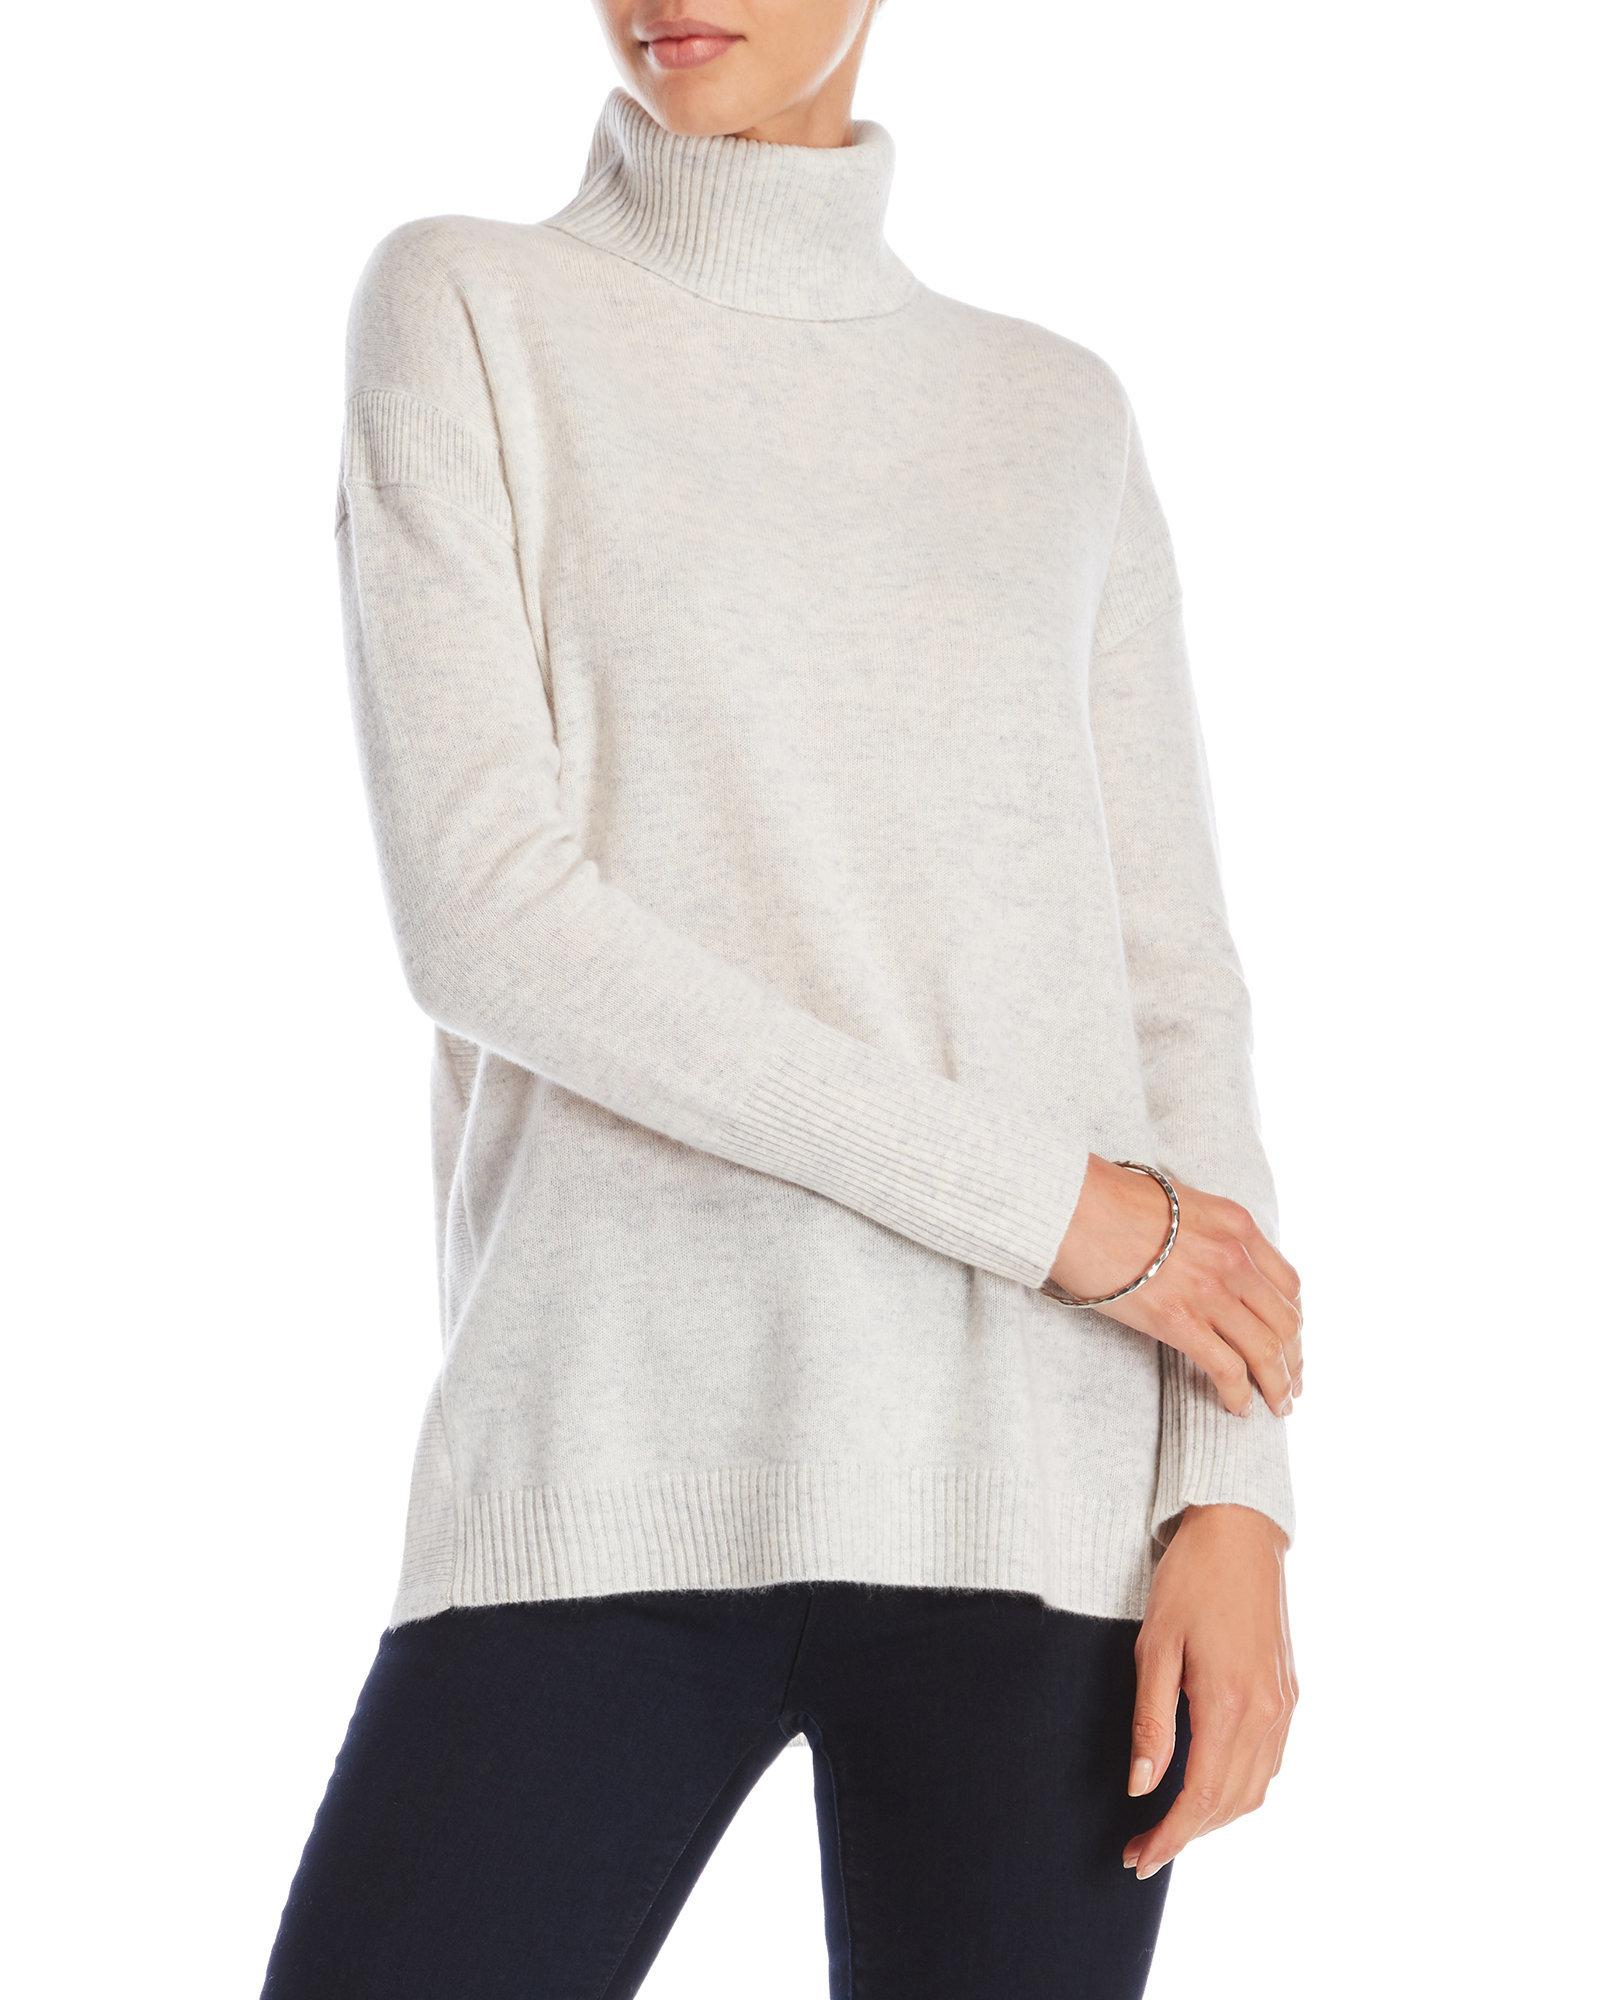 Ply cashmere Cashmere Turtleneck Tunic Sweater | Lyst